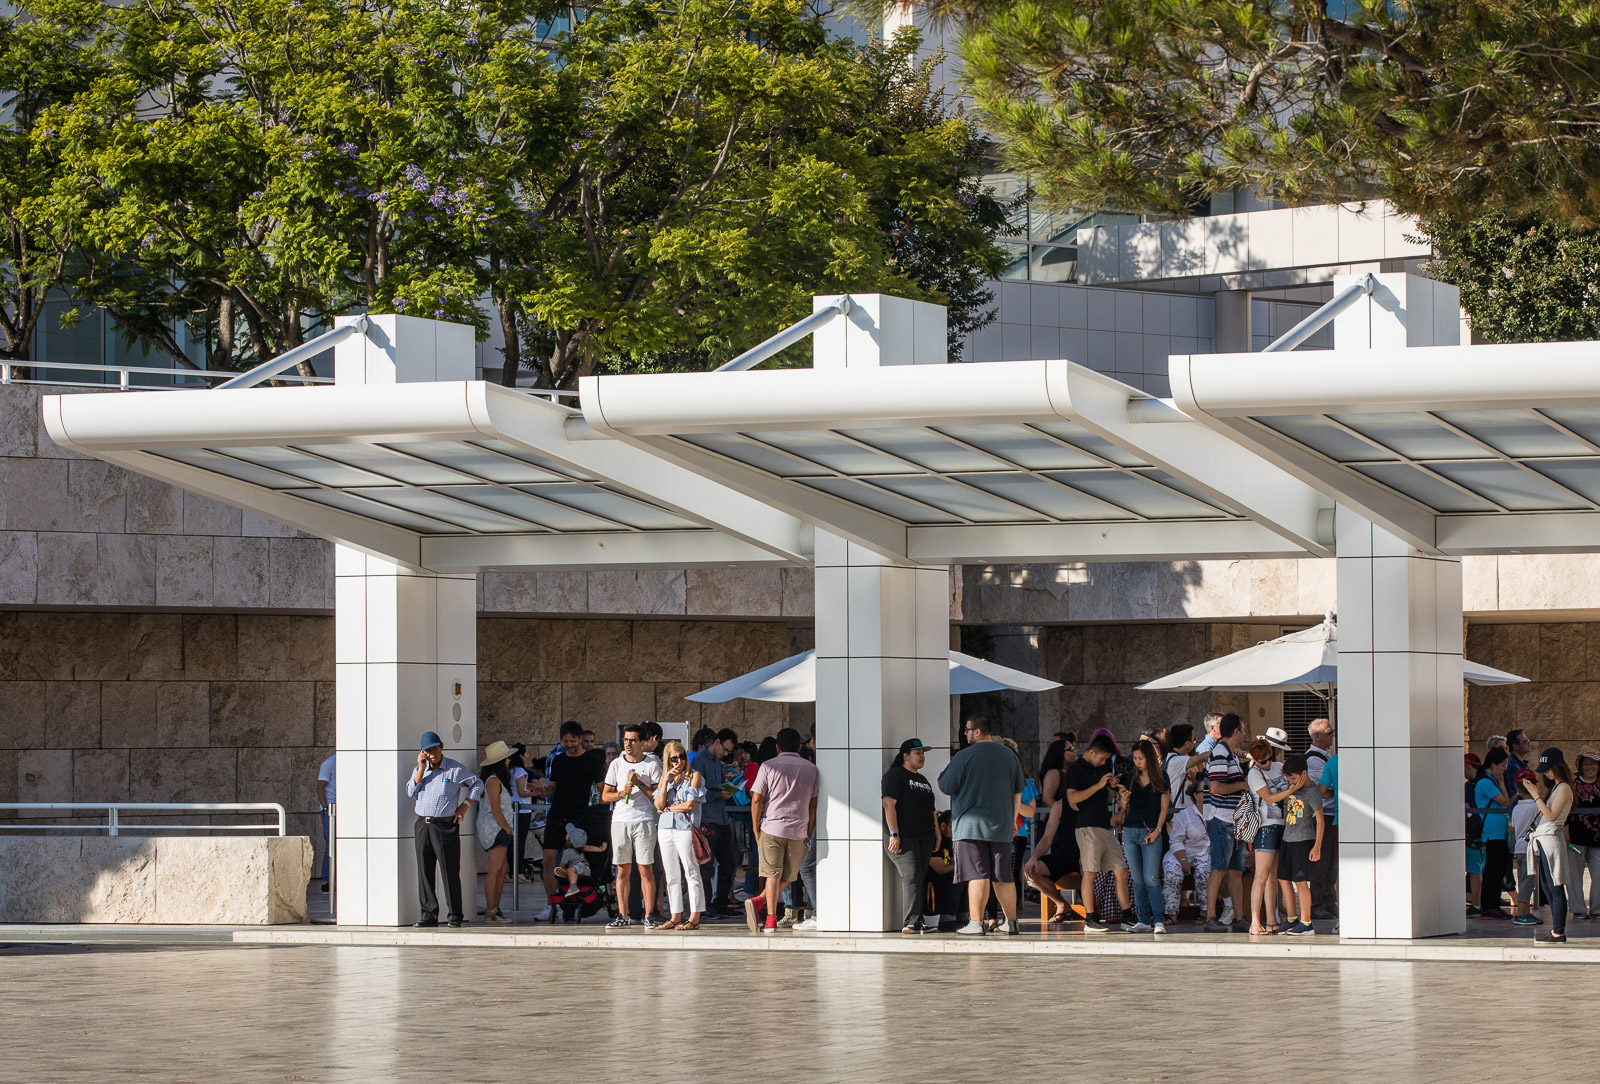 People visitting the Getty Museum designed by Richard Meier